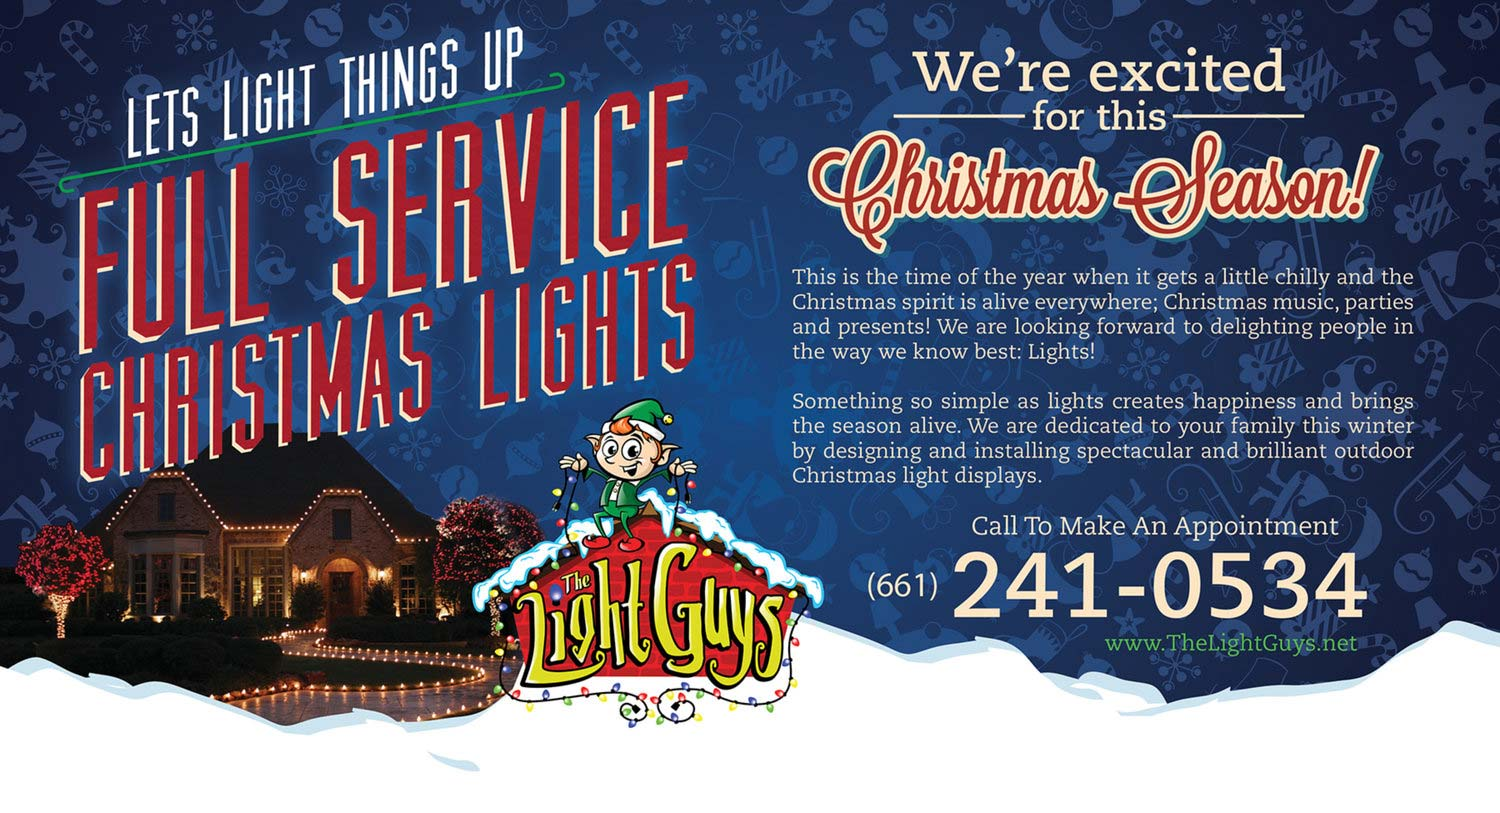 Print Design | Light Guys - Full Service Christmas Lights Mailer